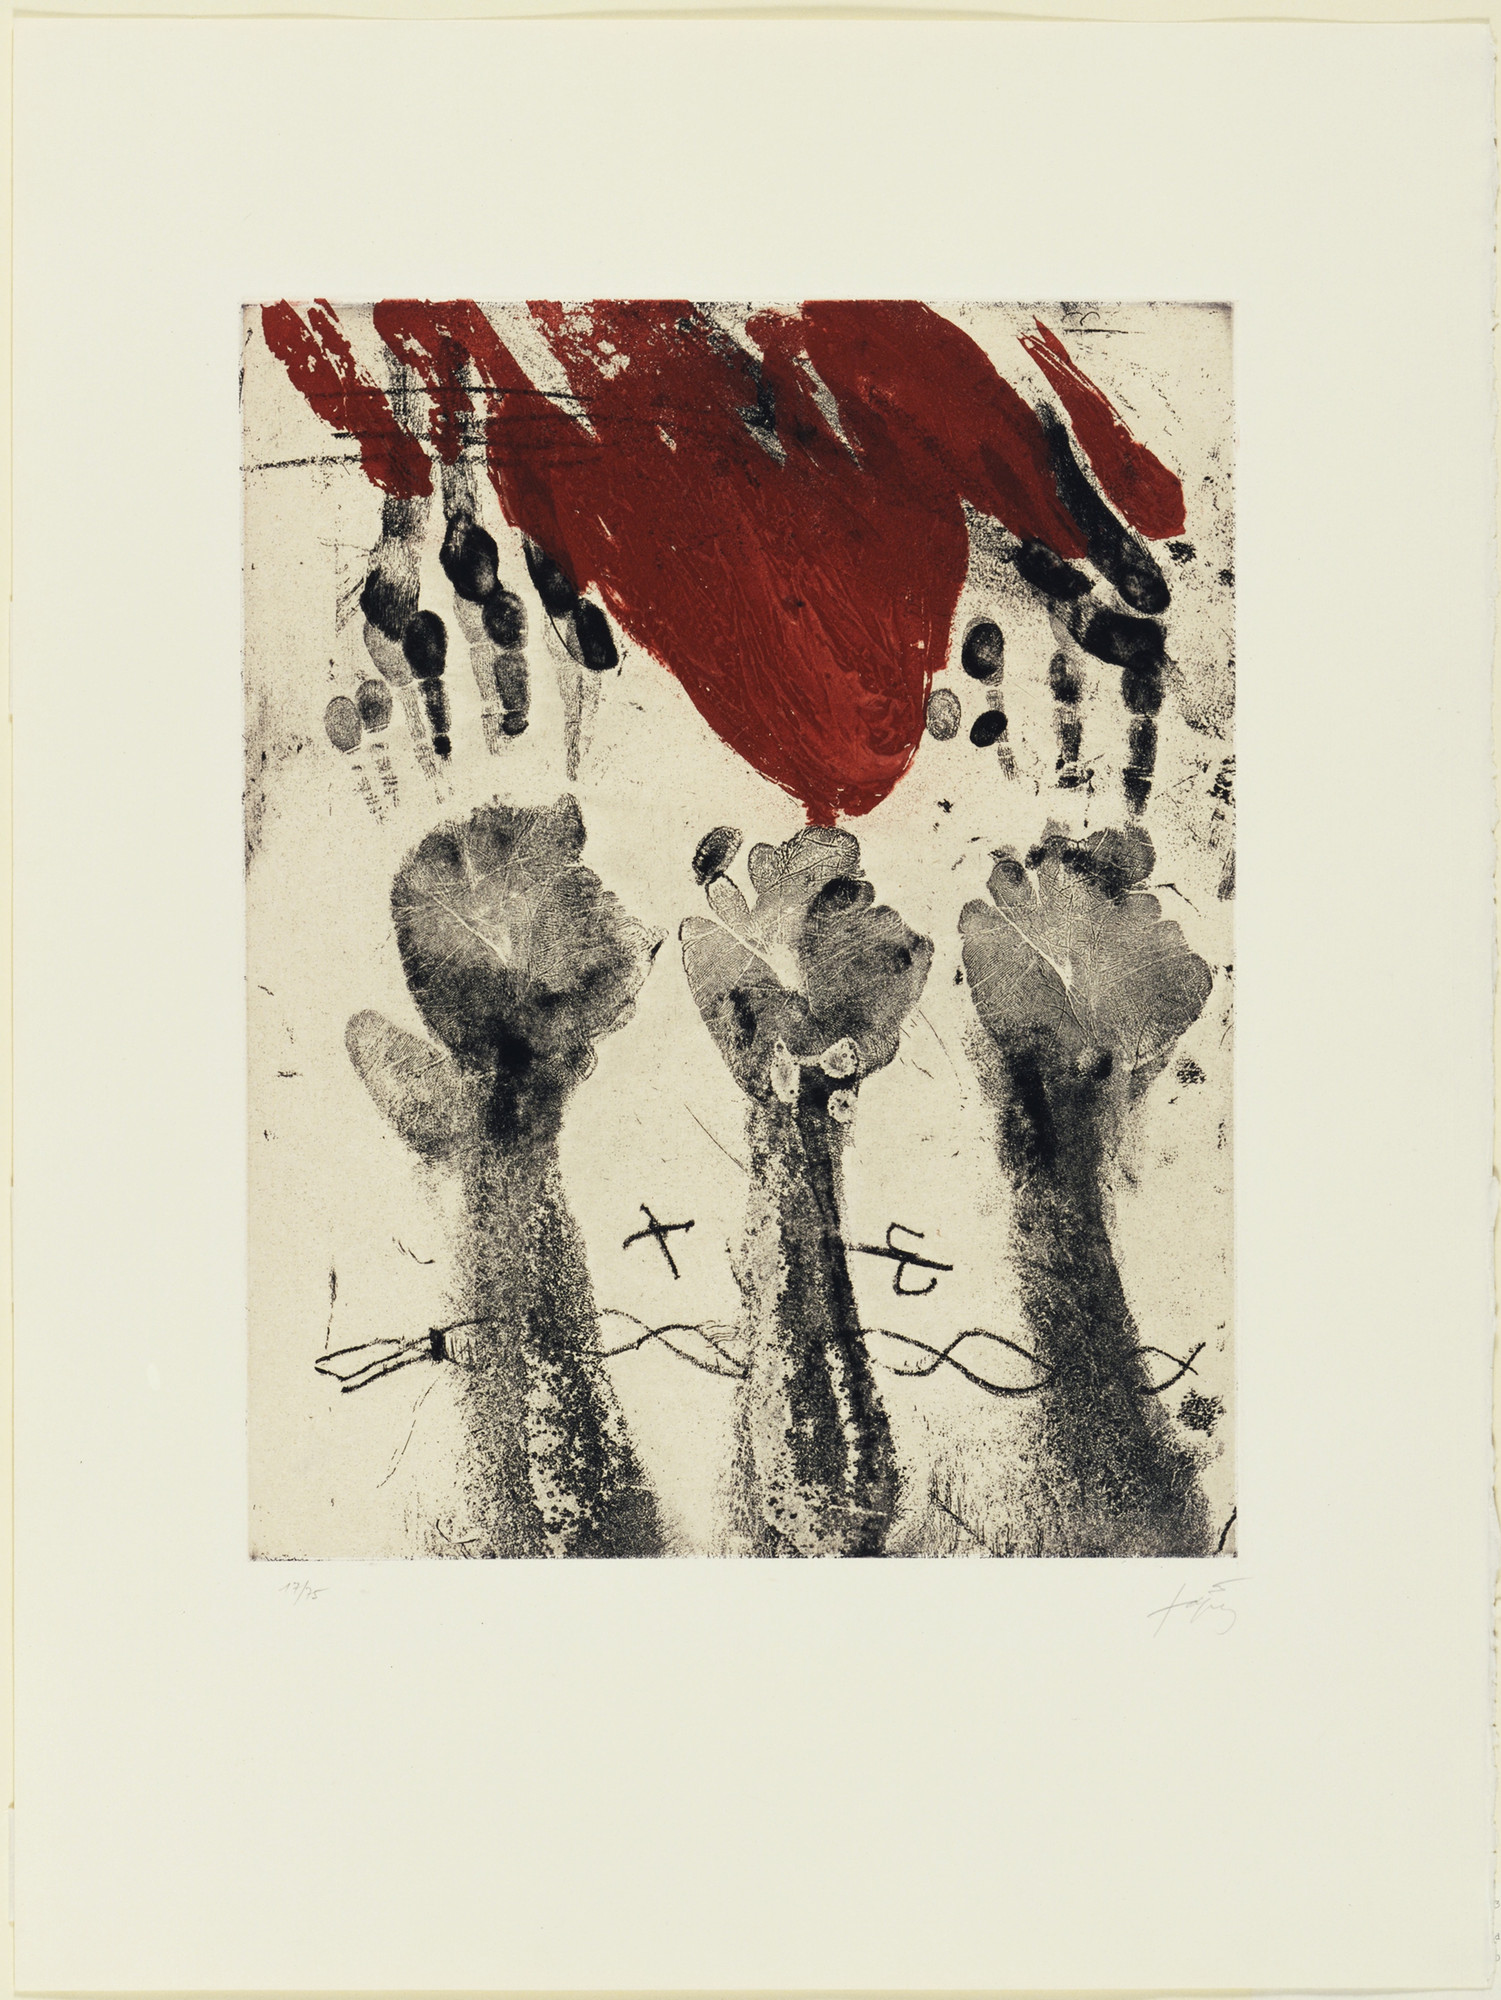 Antoni Tàpies. The Hands (Les Mains). 1969